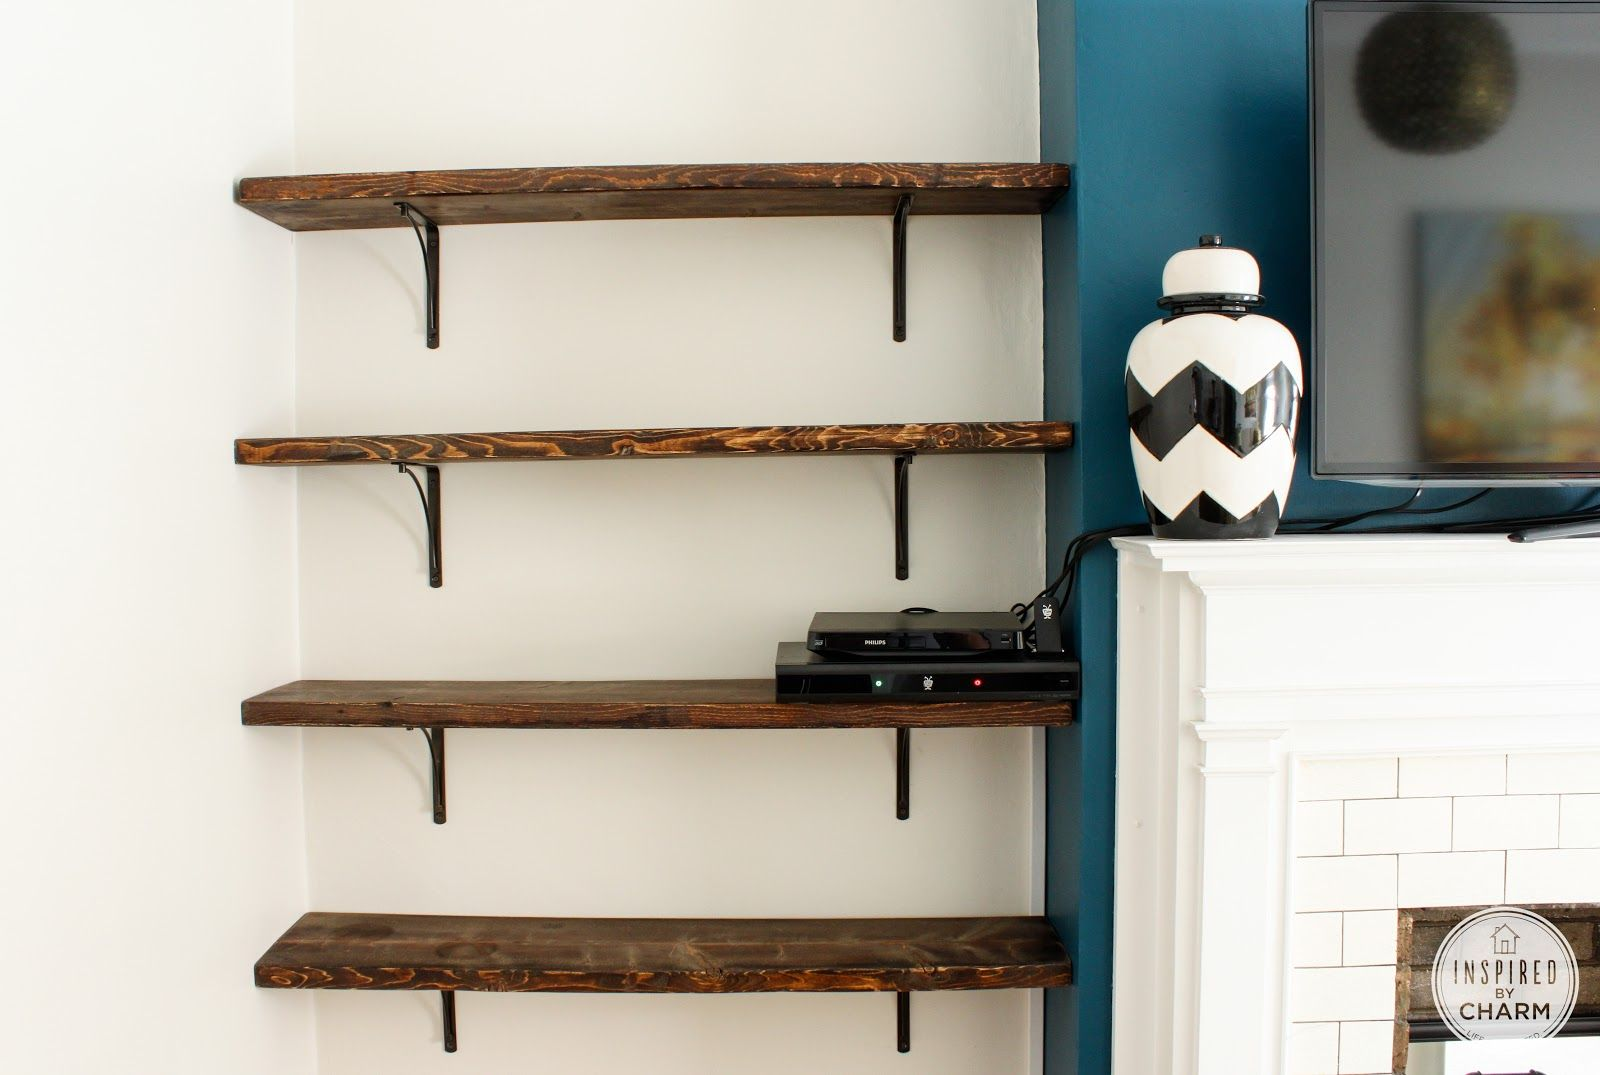 Hanging bookshelf lovable awesome hanging bookcase - Wall mounted bookshelf designs ...